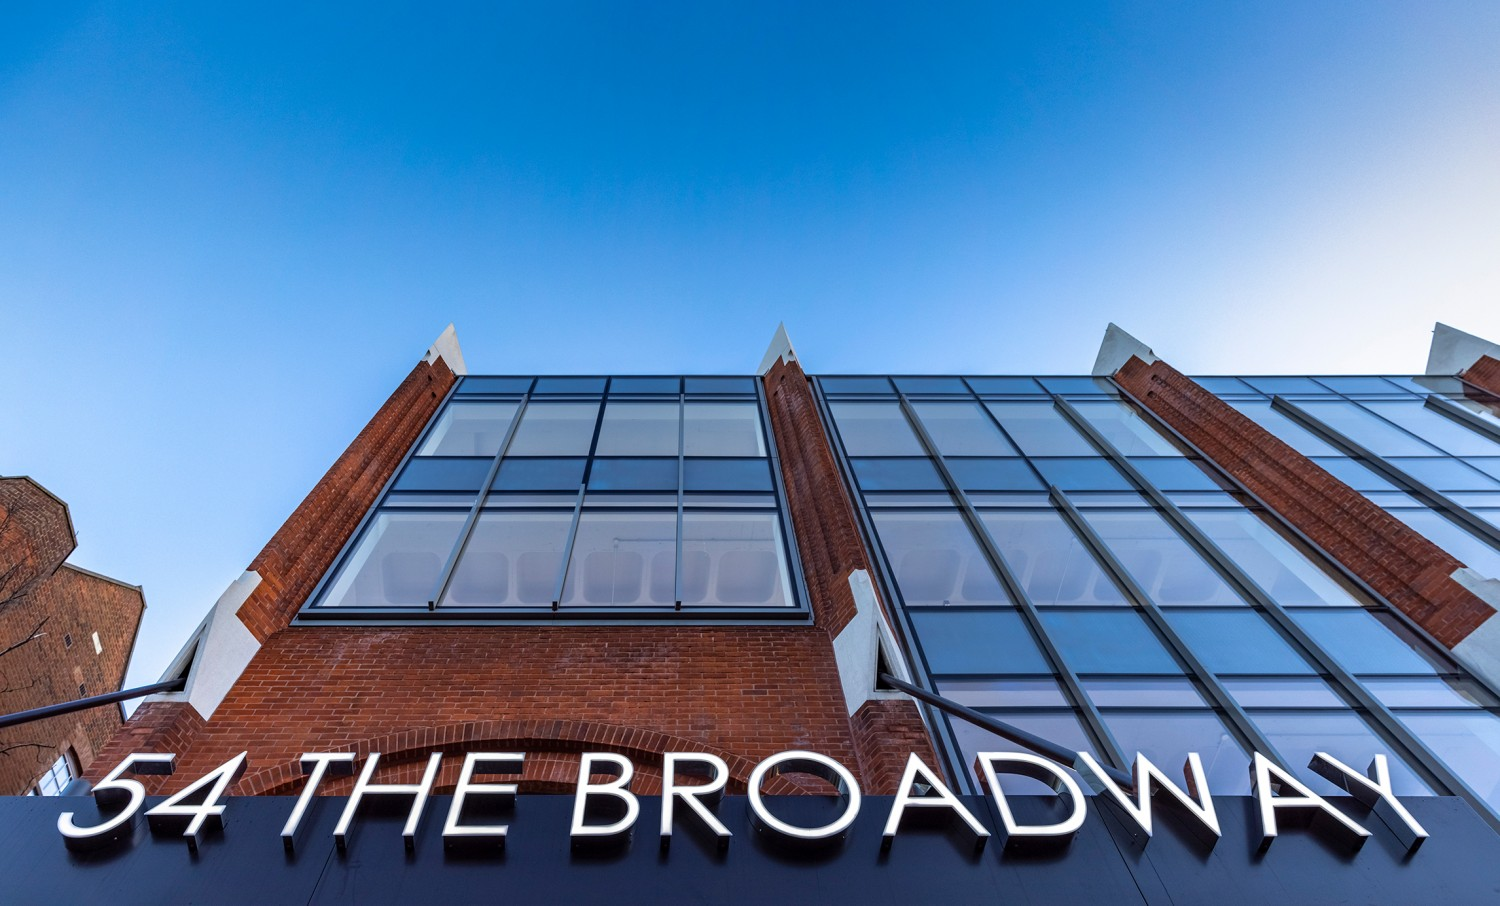 54 The Broadway